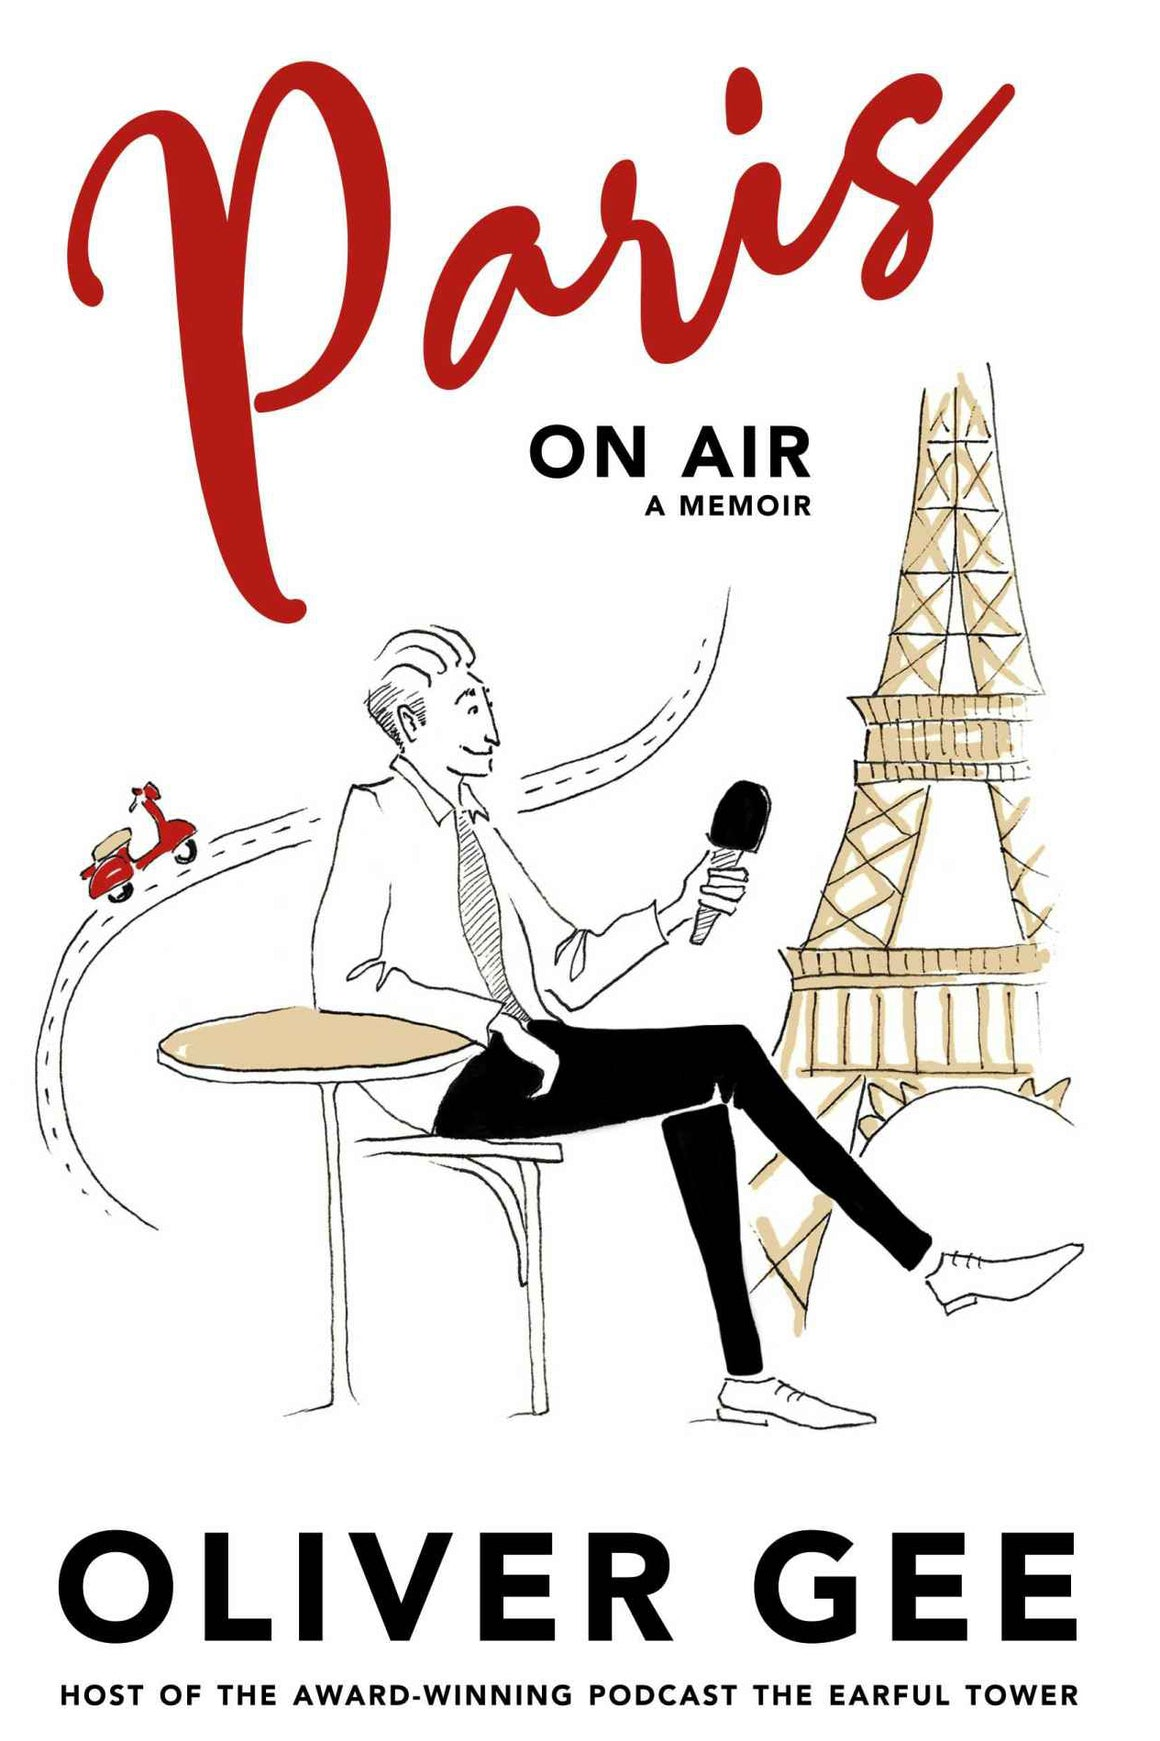 Paris on Air, A Memoir book by Oliver Gee